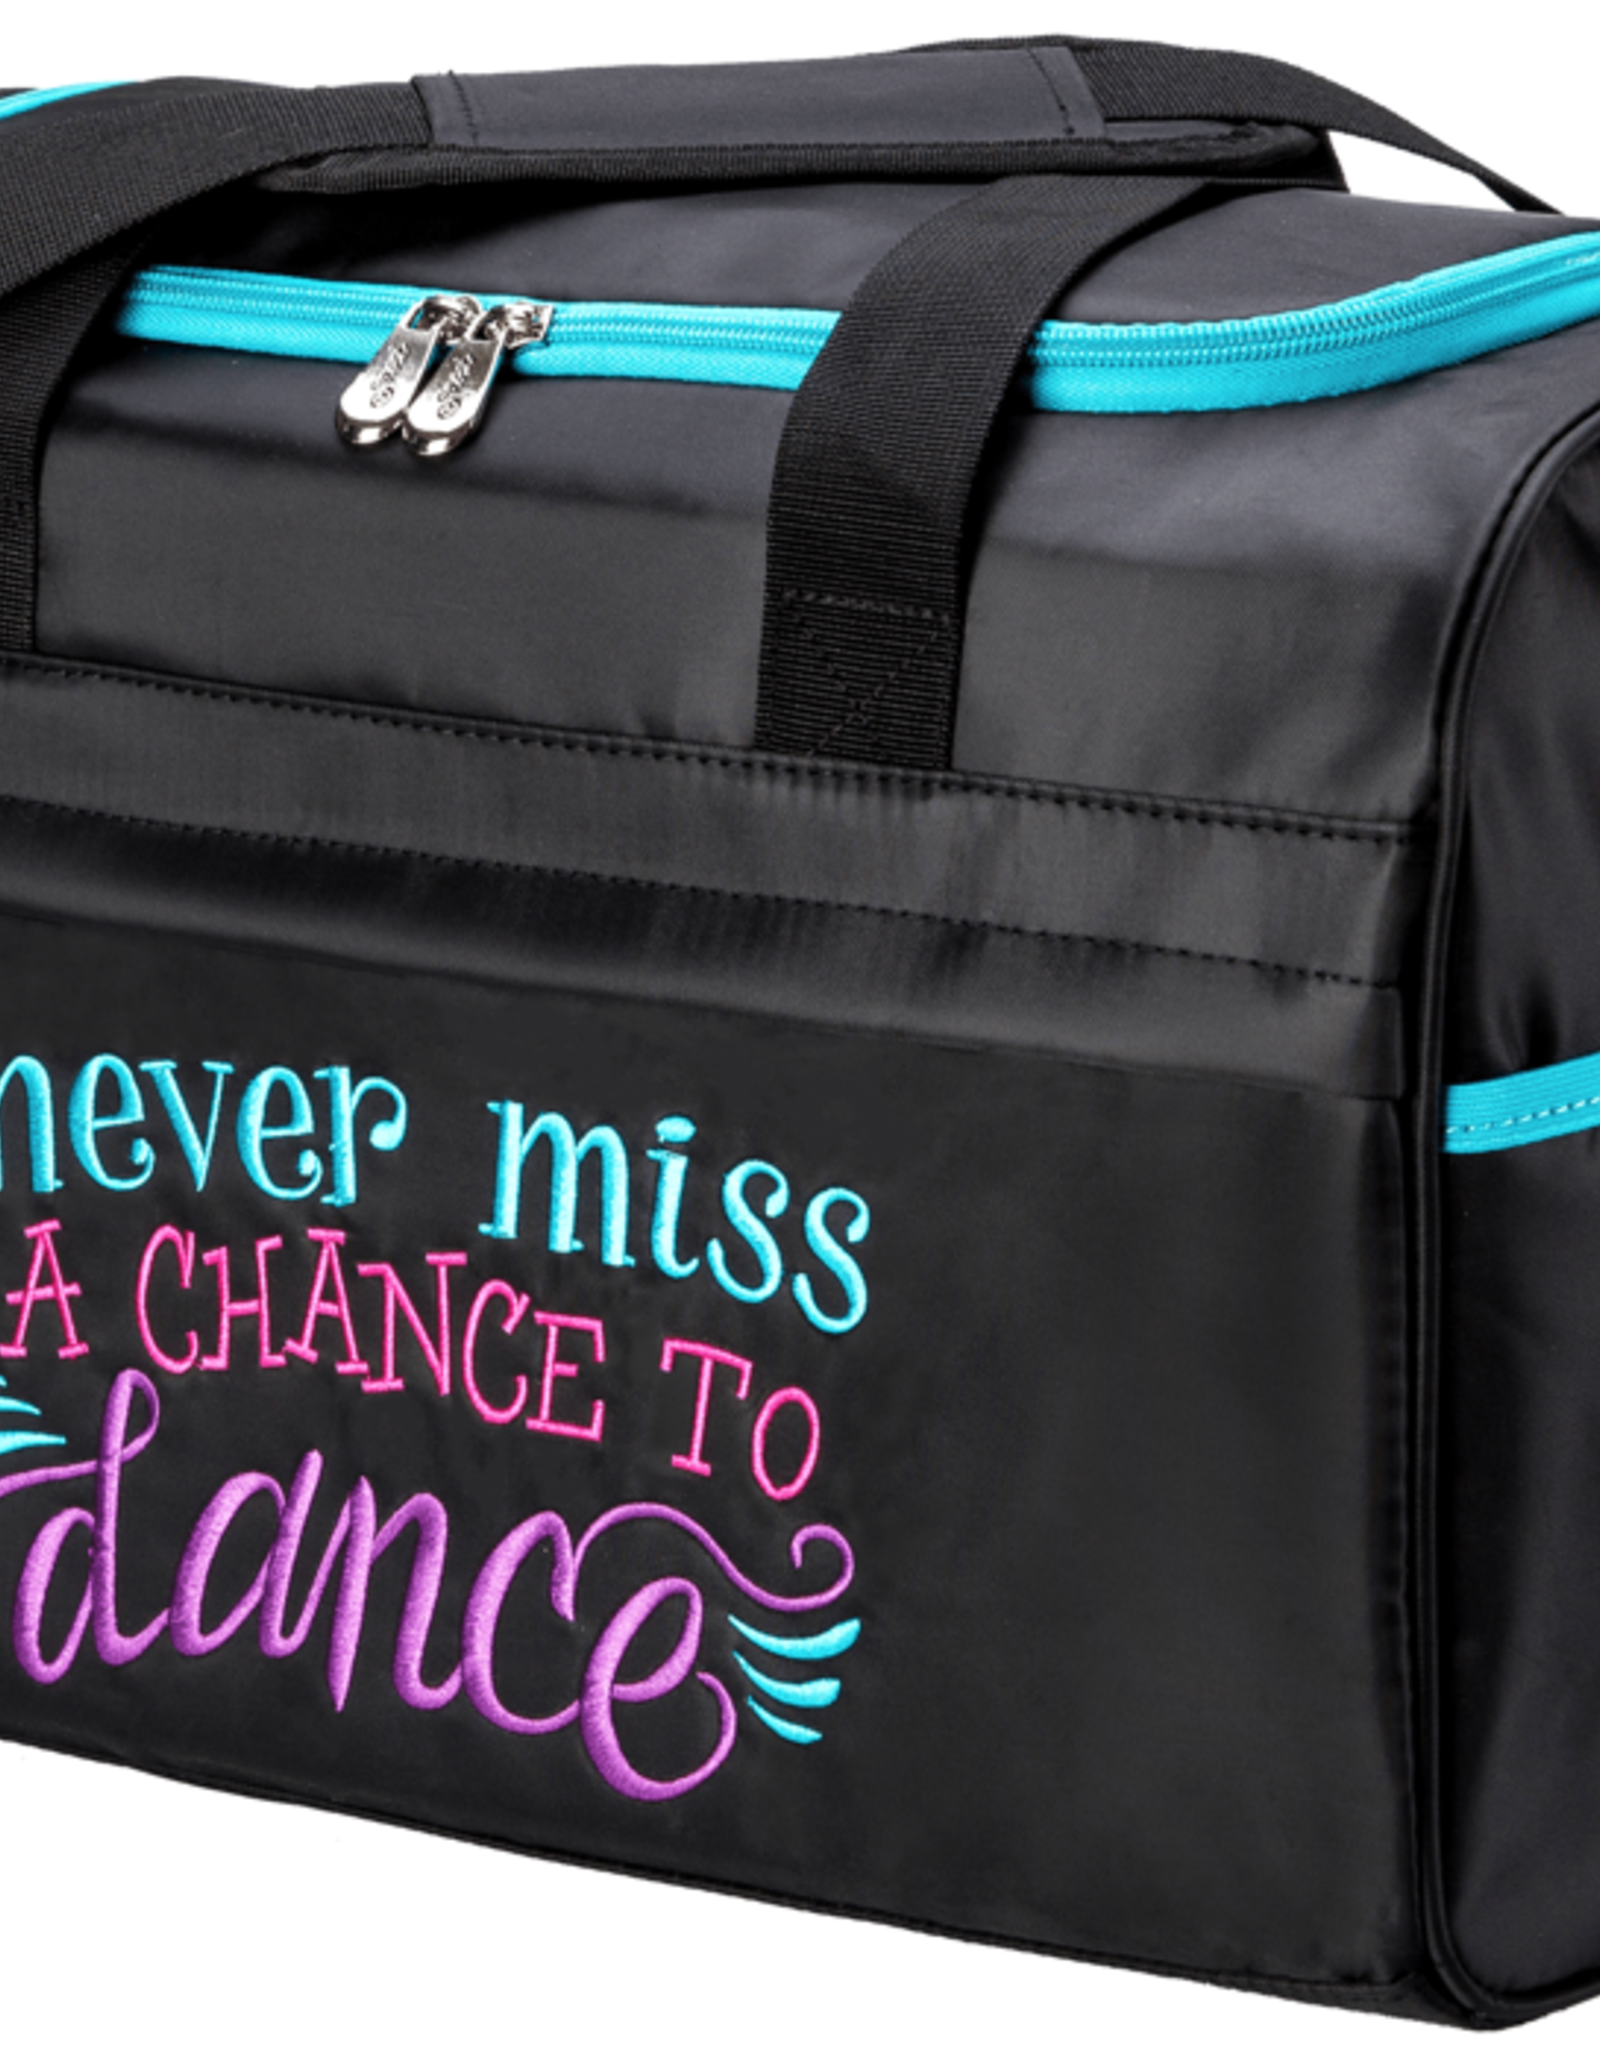 NEVER MISS A CHANCE TO DANCE DUFFLE BAG (NMC-02)